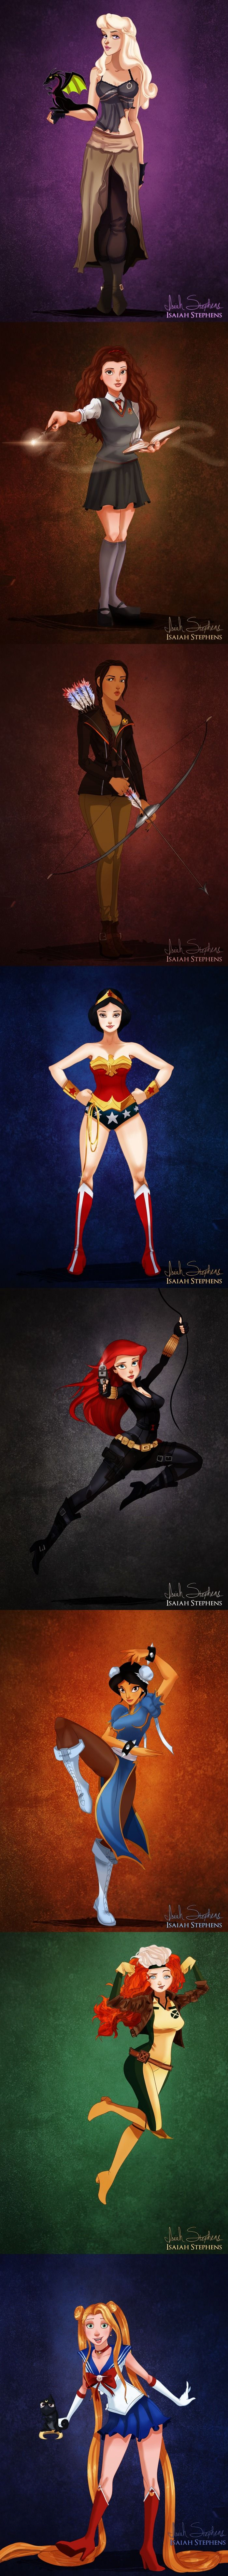 Disney Princesses Dressed Up in Pop Culture Halloween Costumes